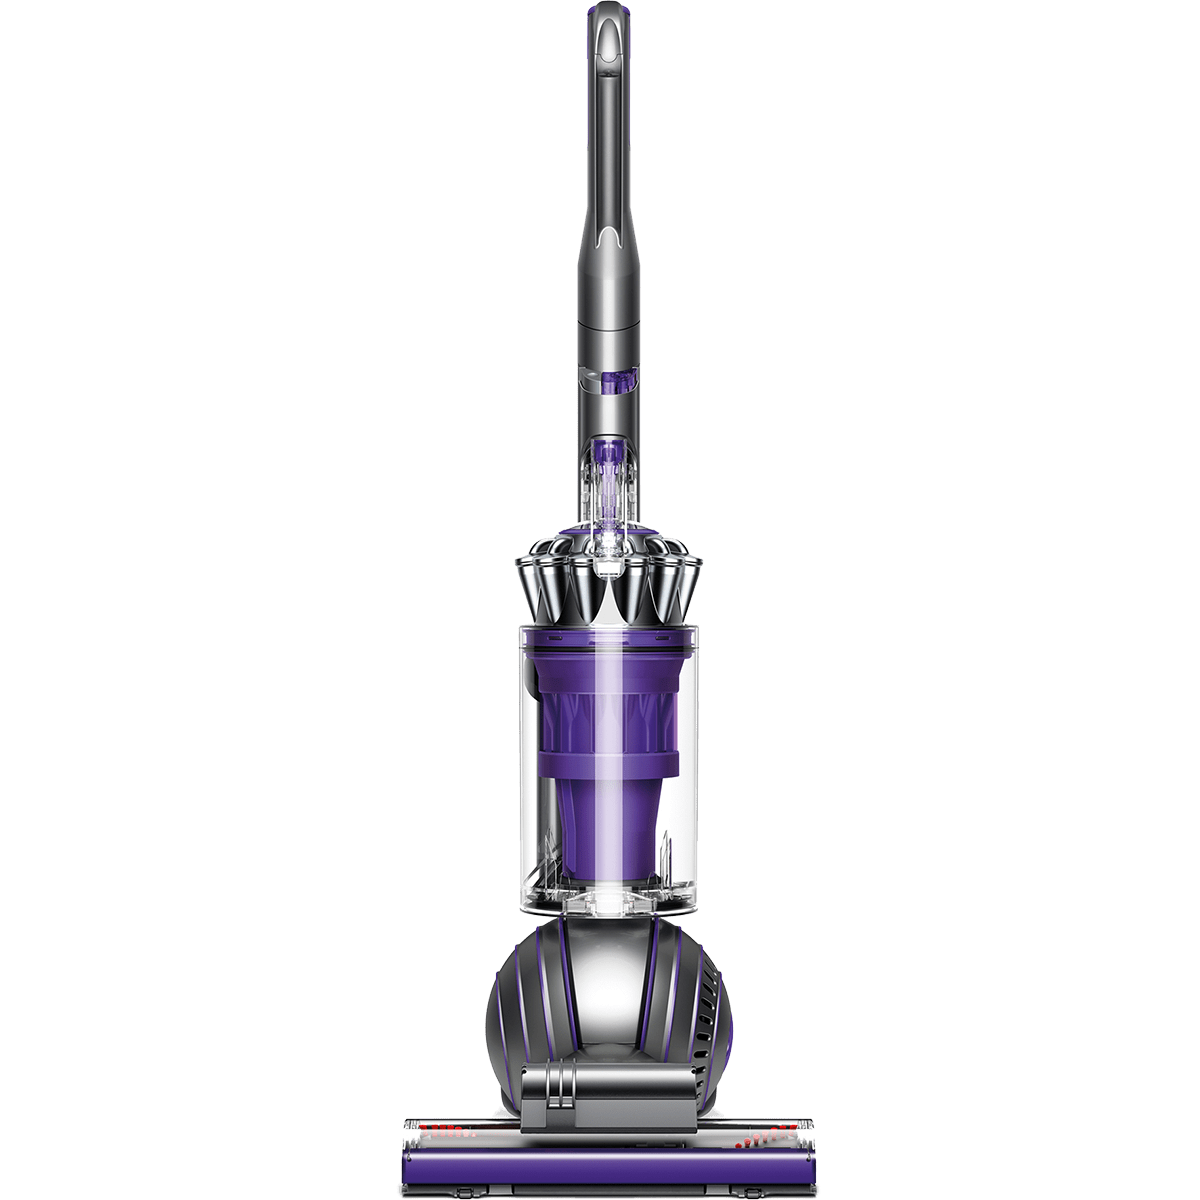 Dyson Ball Animal 2 Upright Vacuum Cleaner Sylvane